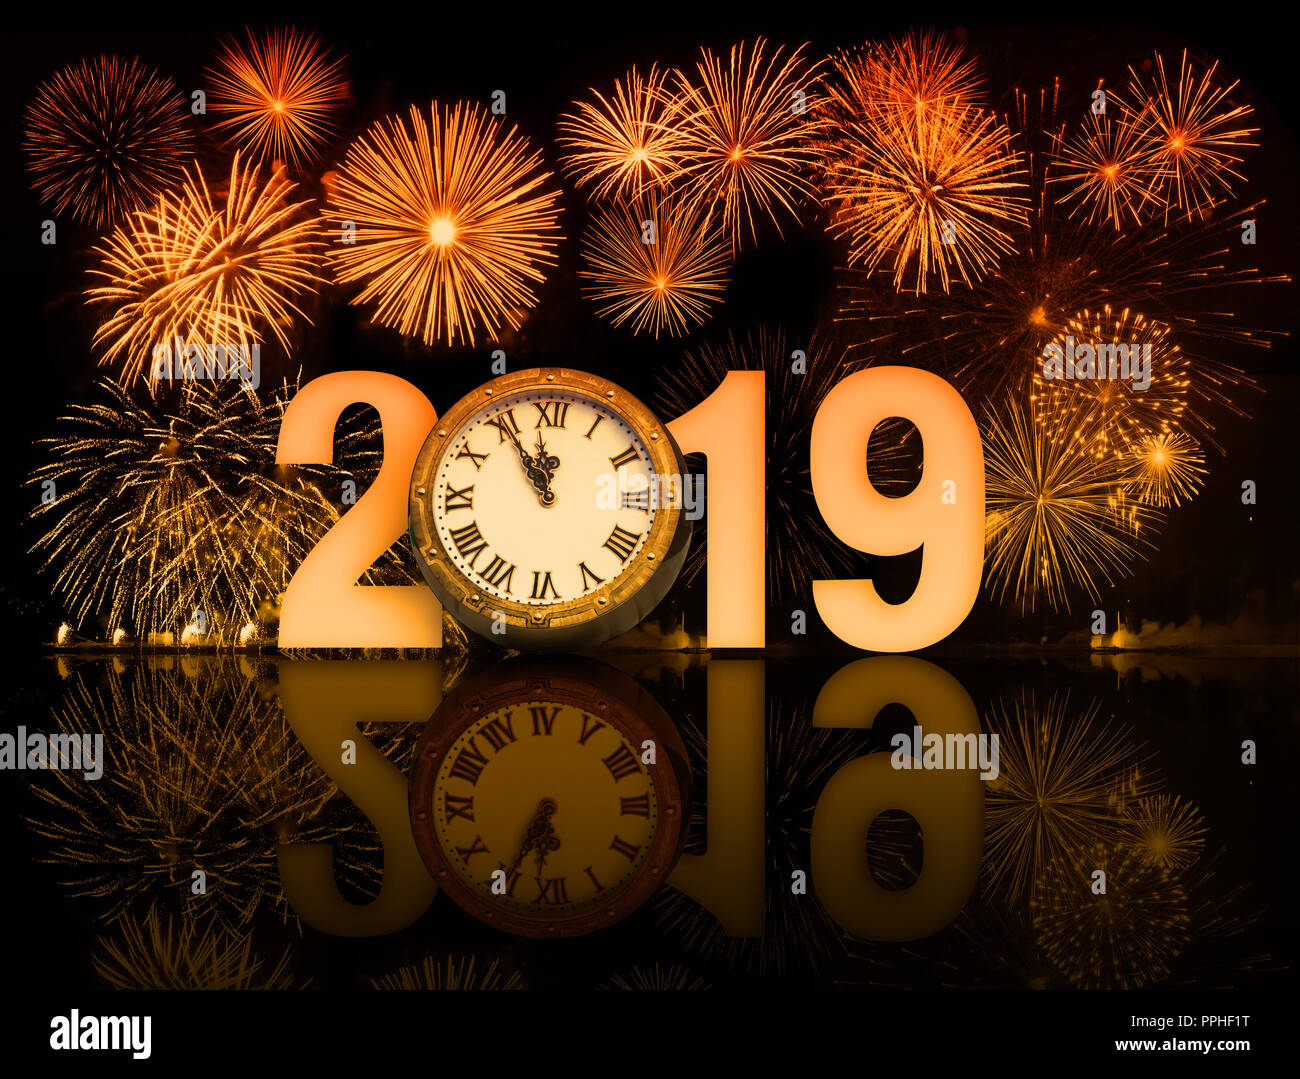 new year 2019 fireworks with clock face Stock Photo